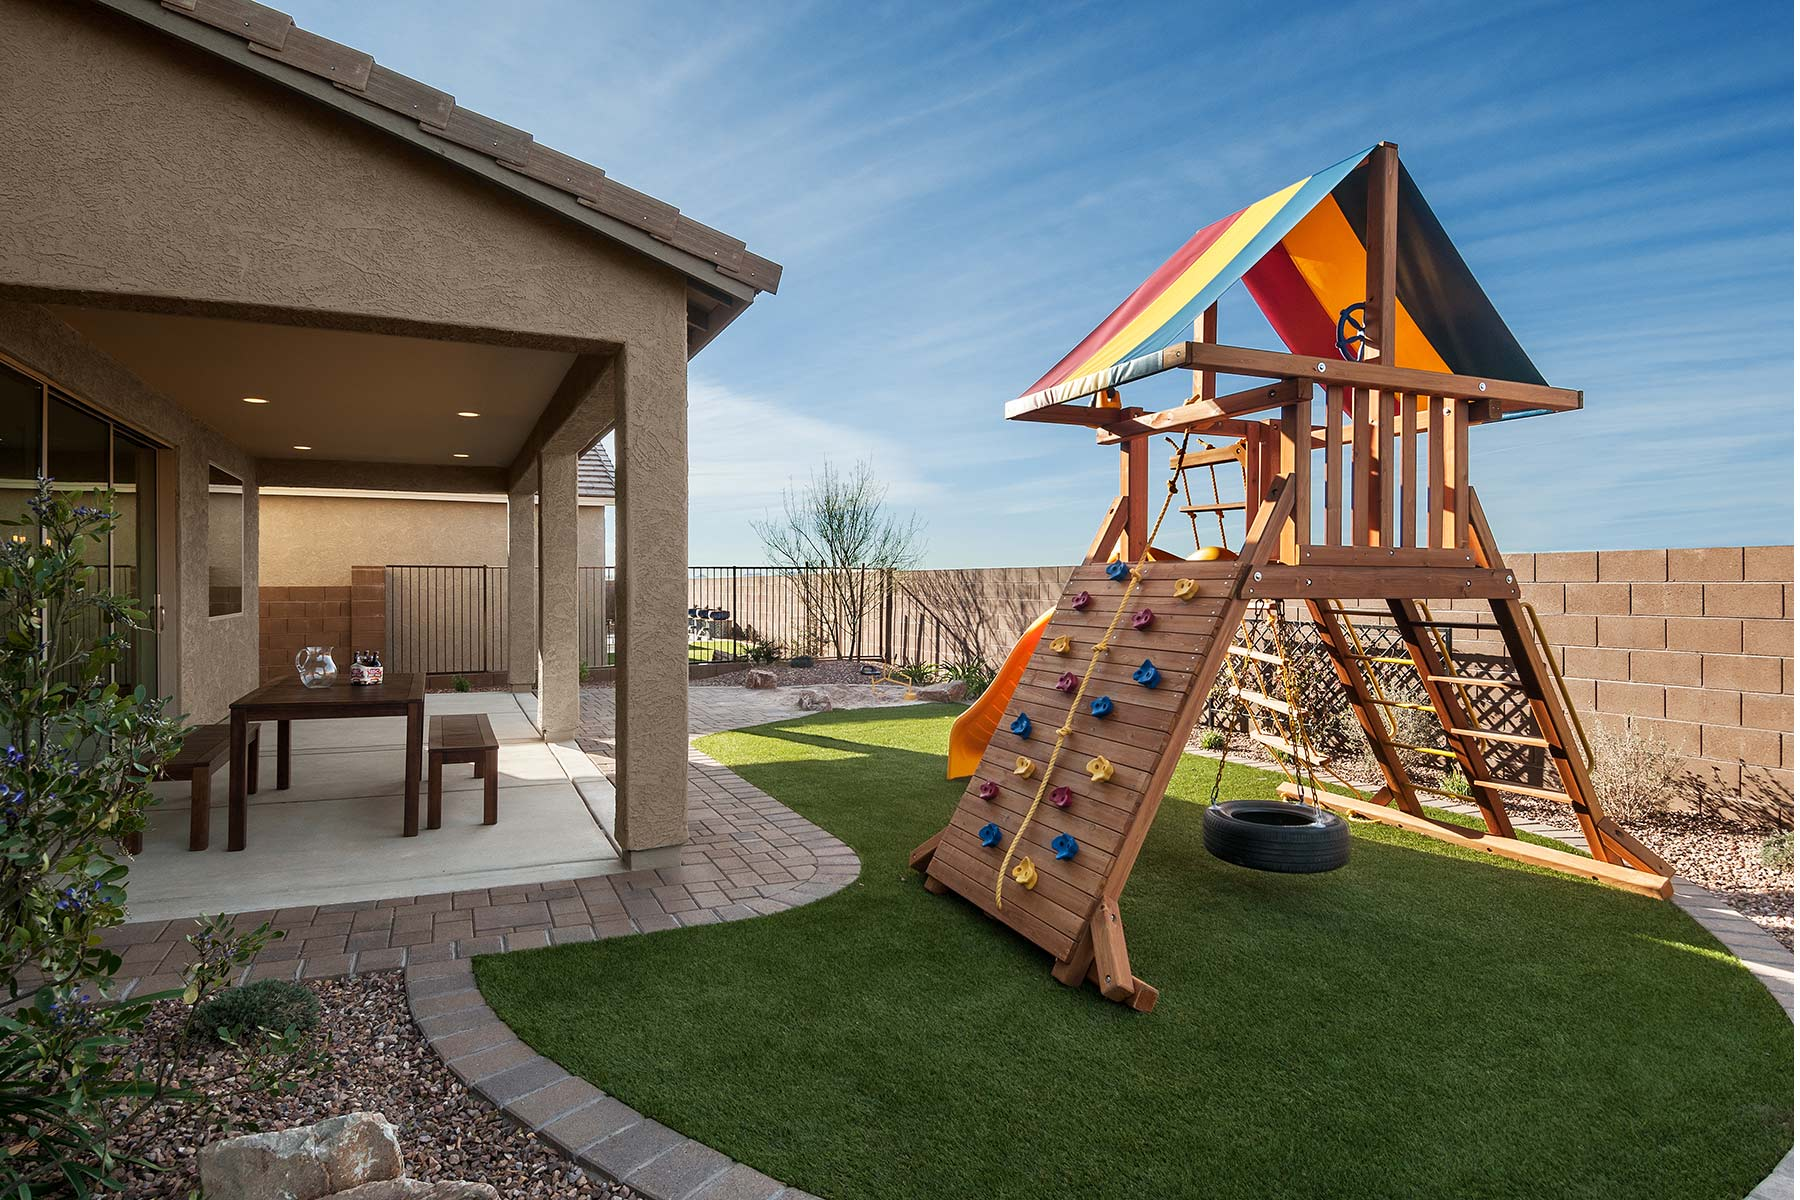 Mesquite Plan Exterior Others at Saguaro Trails in Tucson Arizona by Mattamy Homes